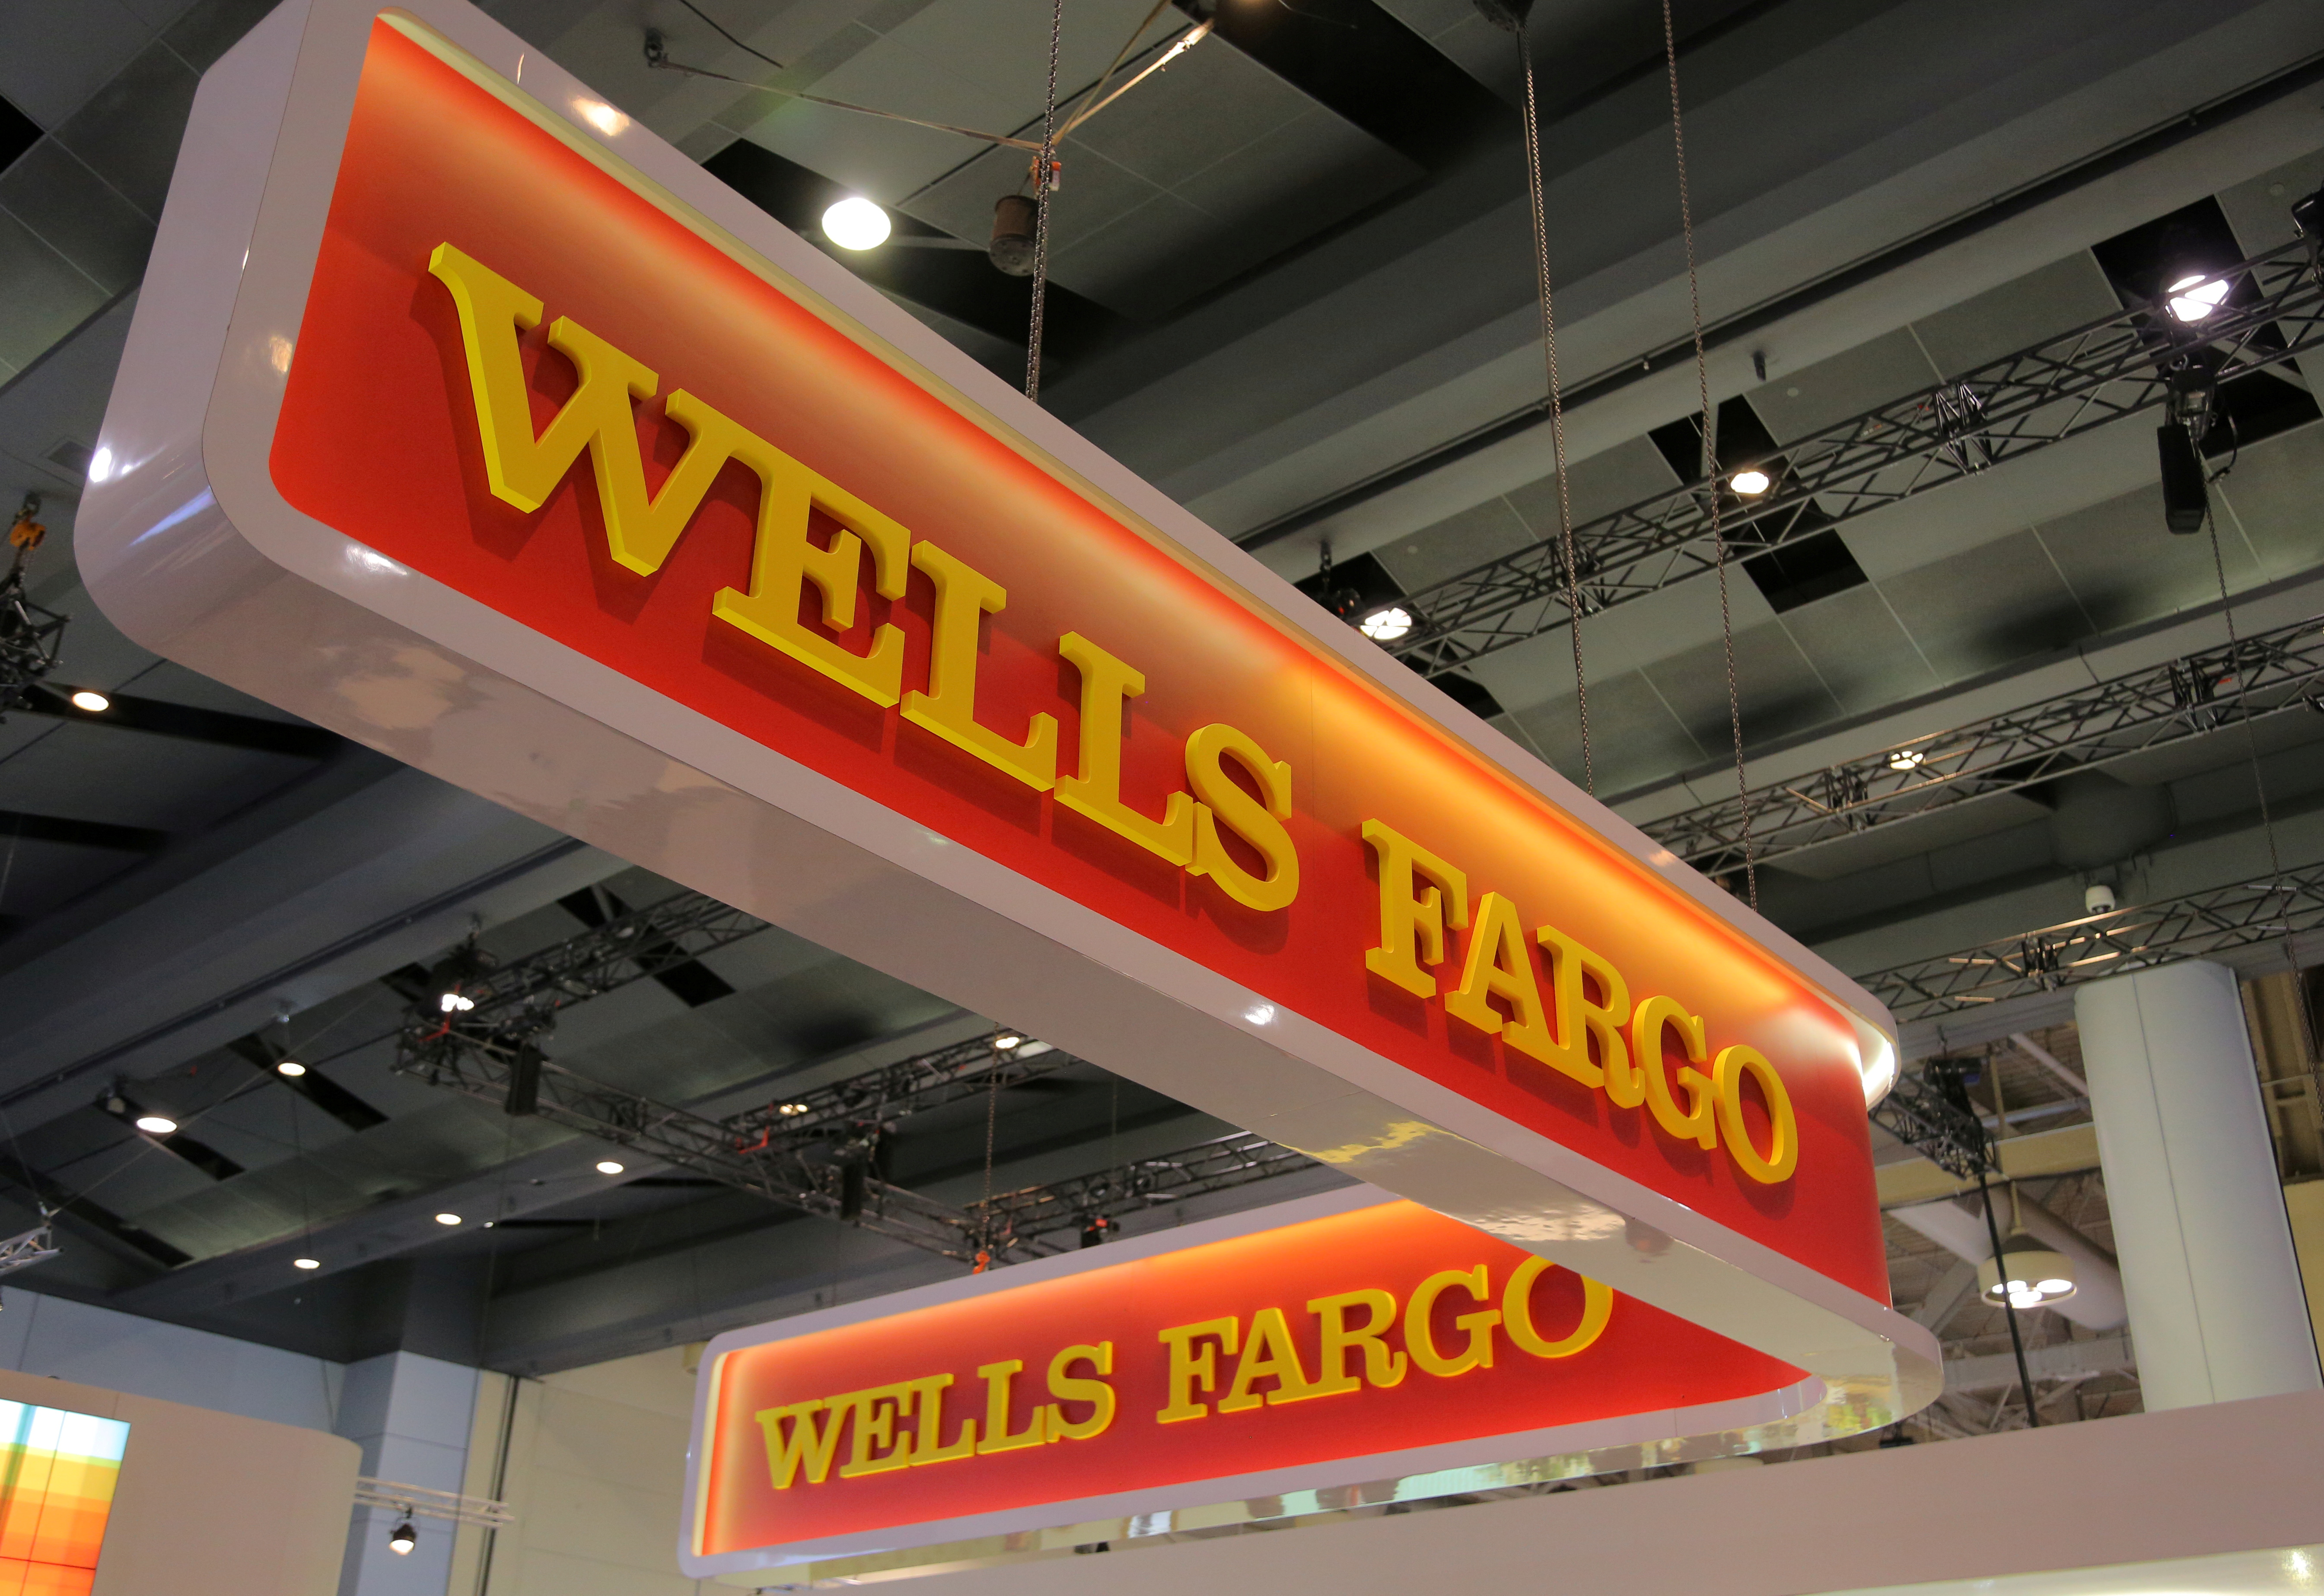 A Wells Fargo logo is seen at the SIBOS banking and financial conference in Toronto, Ontario, Canada October 19, 2017.  REUTERS/Chris Helgren